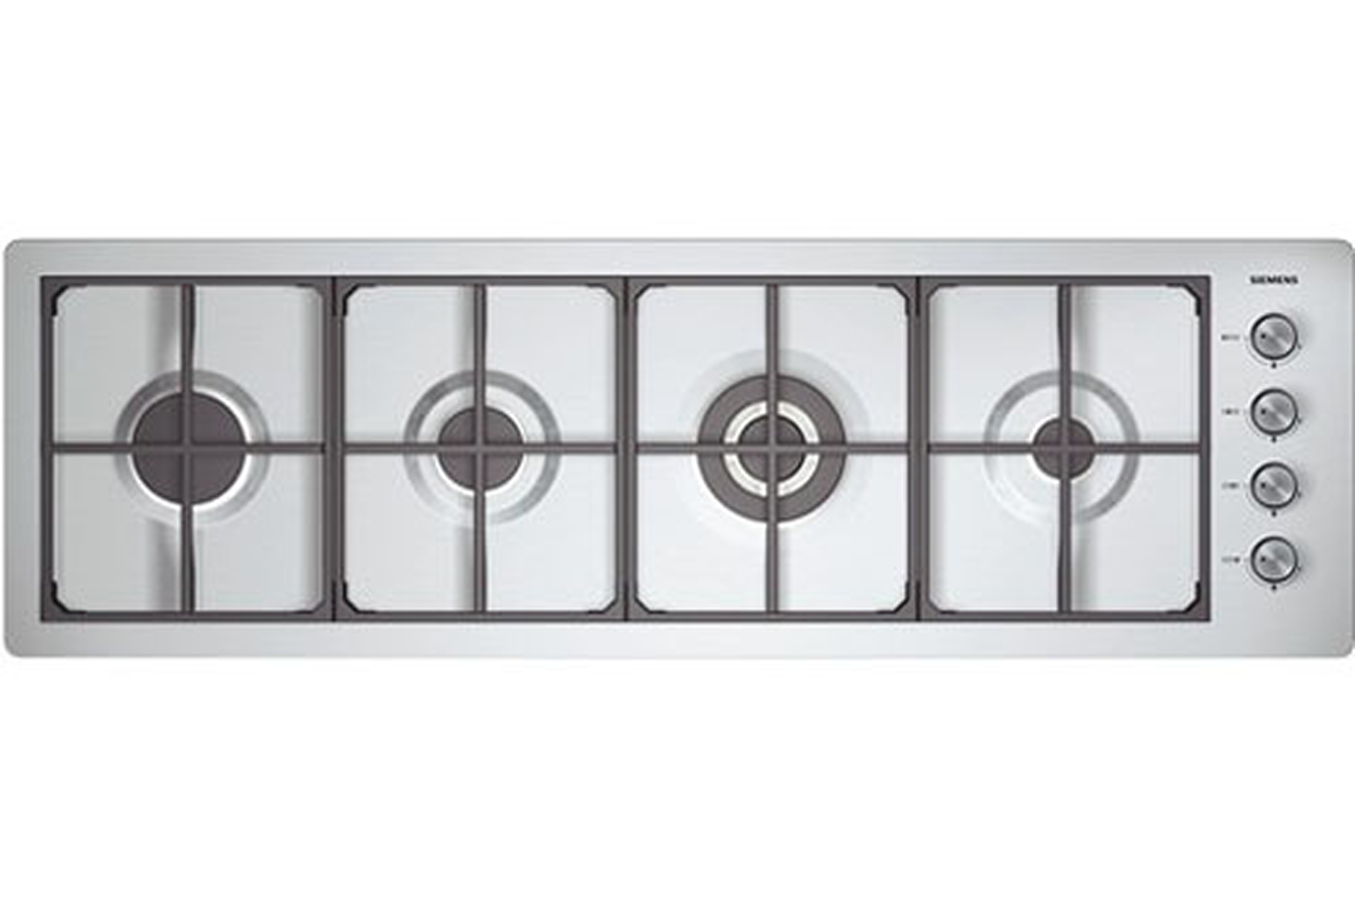 Plaque gaz siemens er 59553 inox er59553 2381516 darty - Table cuisson gaz siemens ...